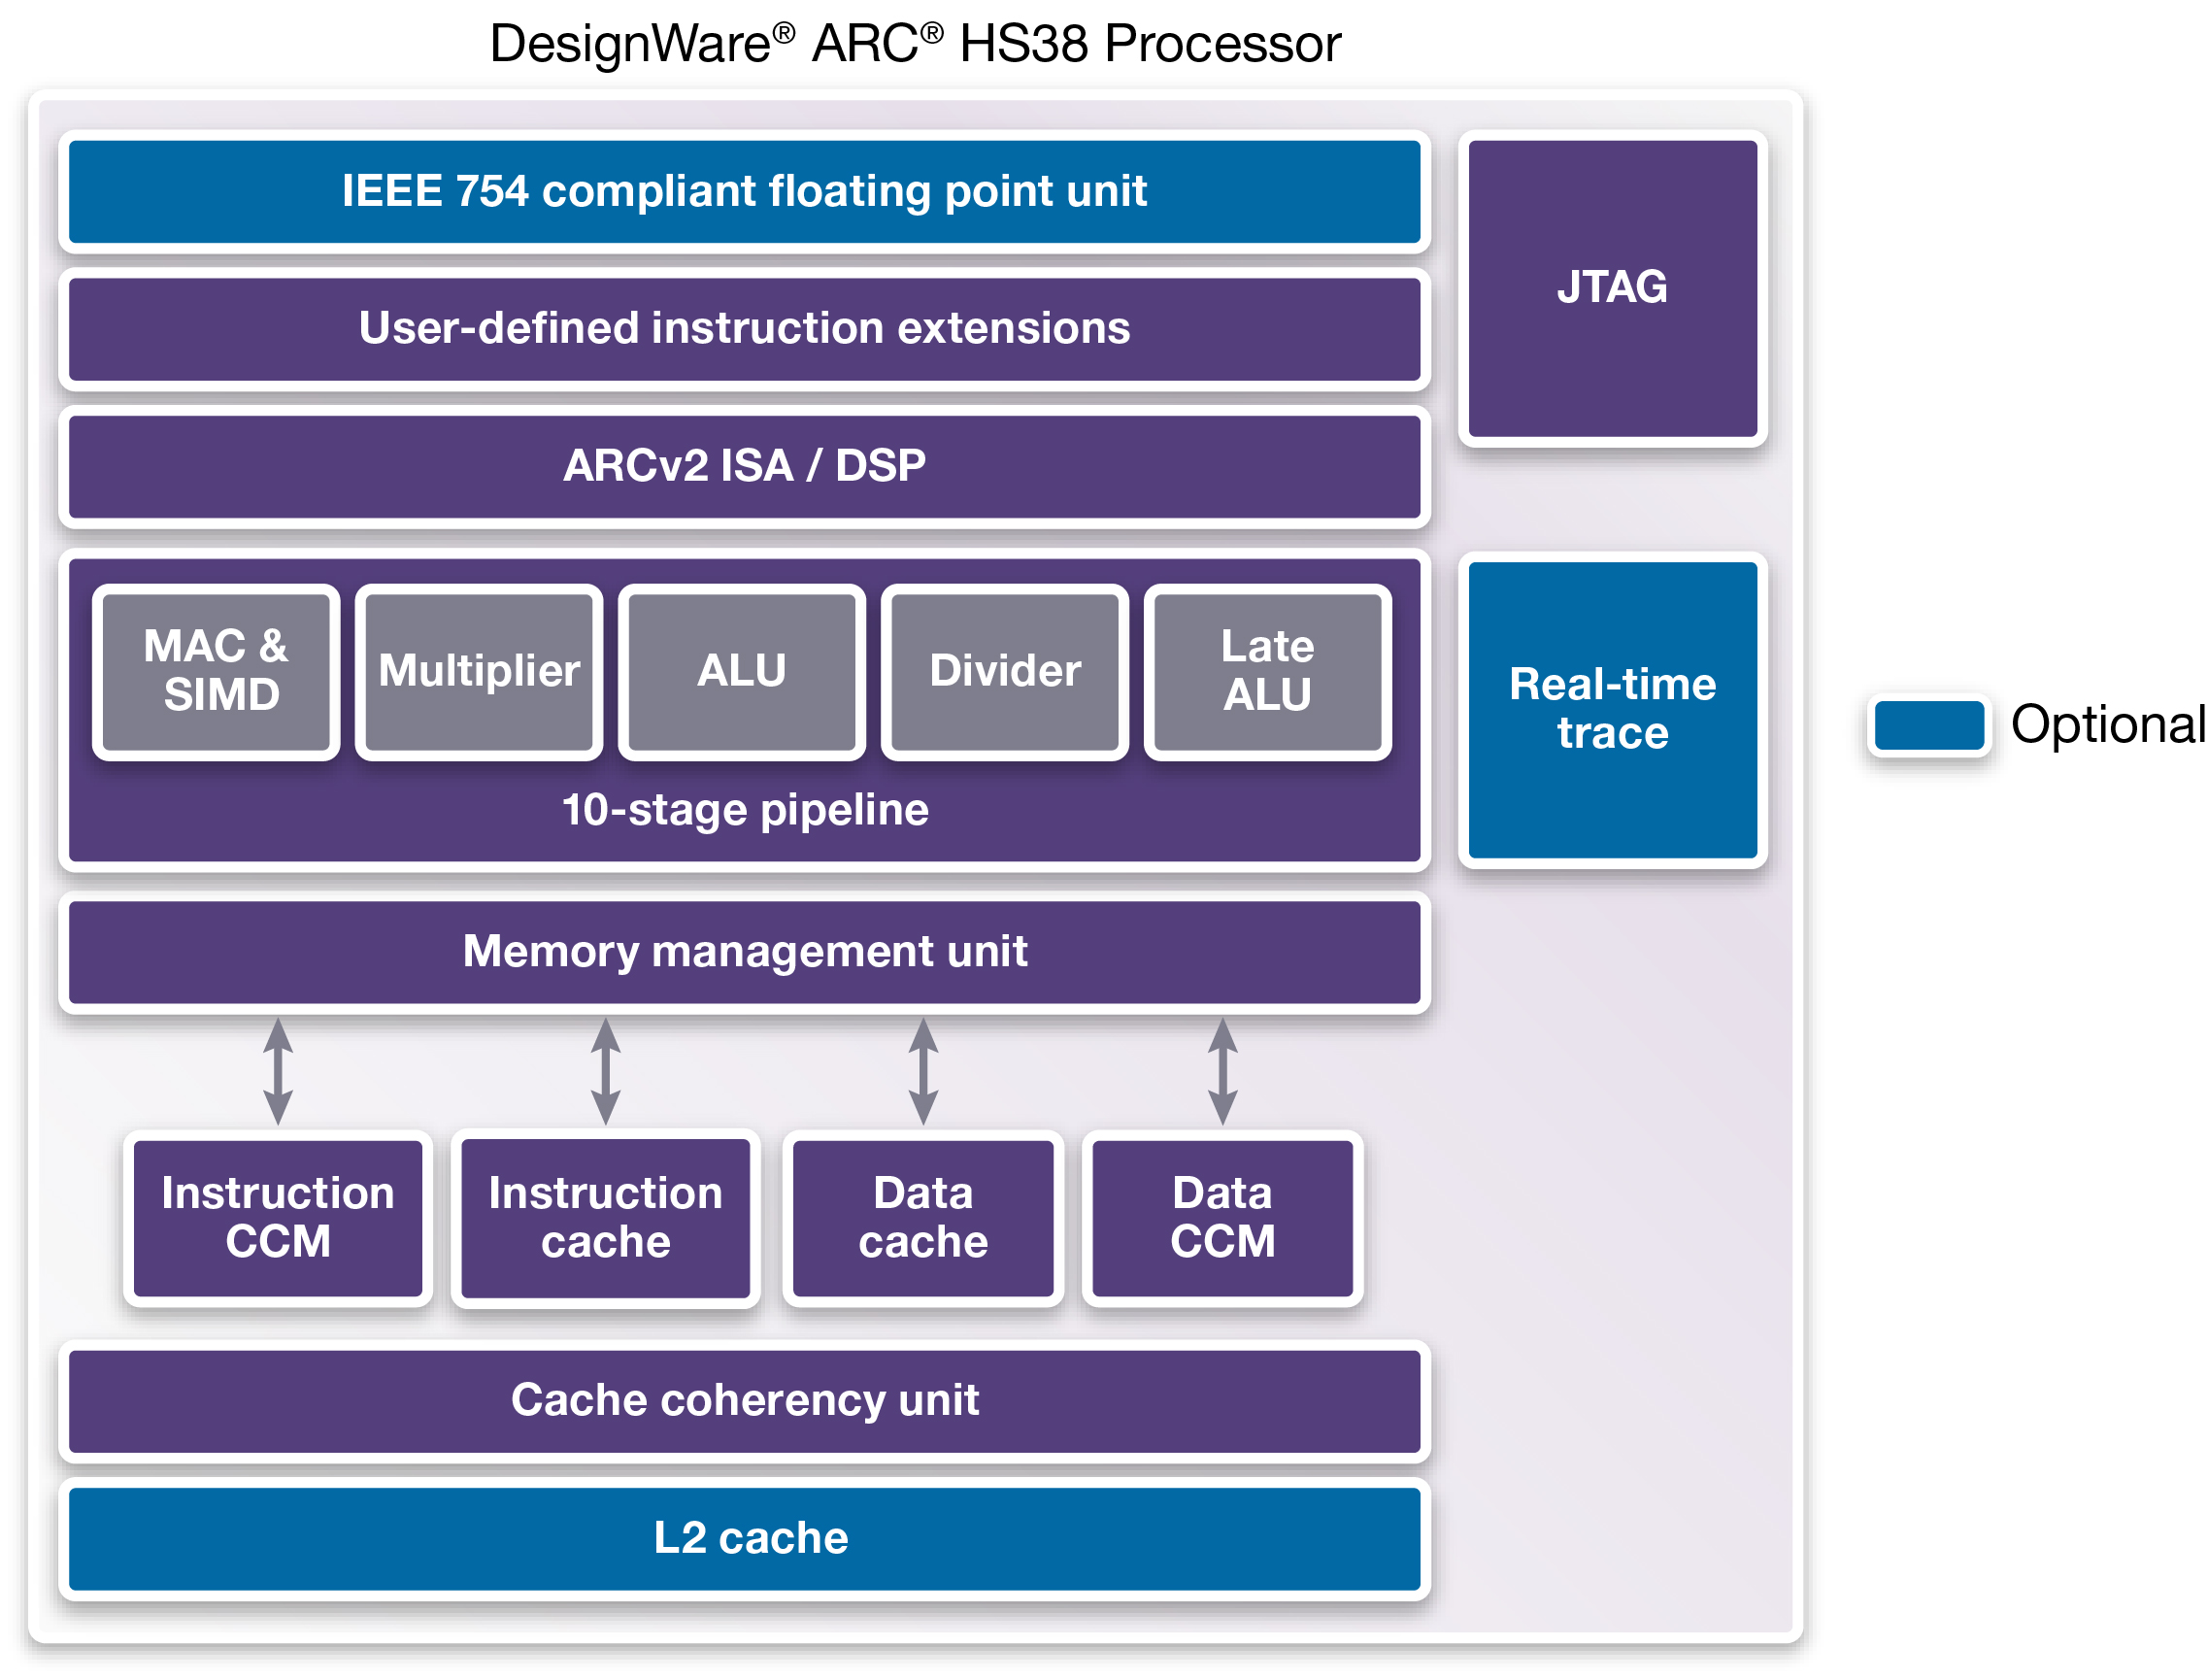 DesignWare ARC HS38 processor IP core